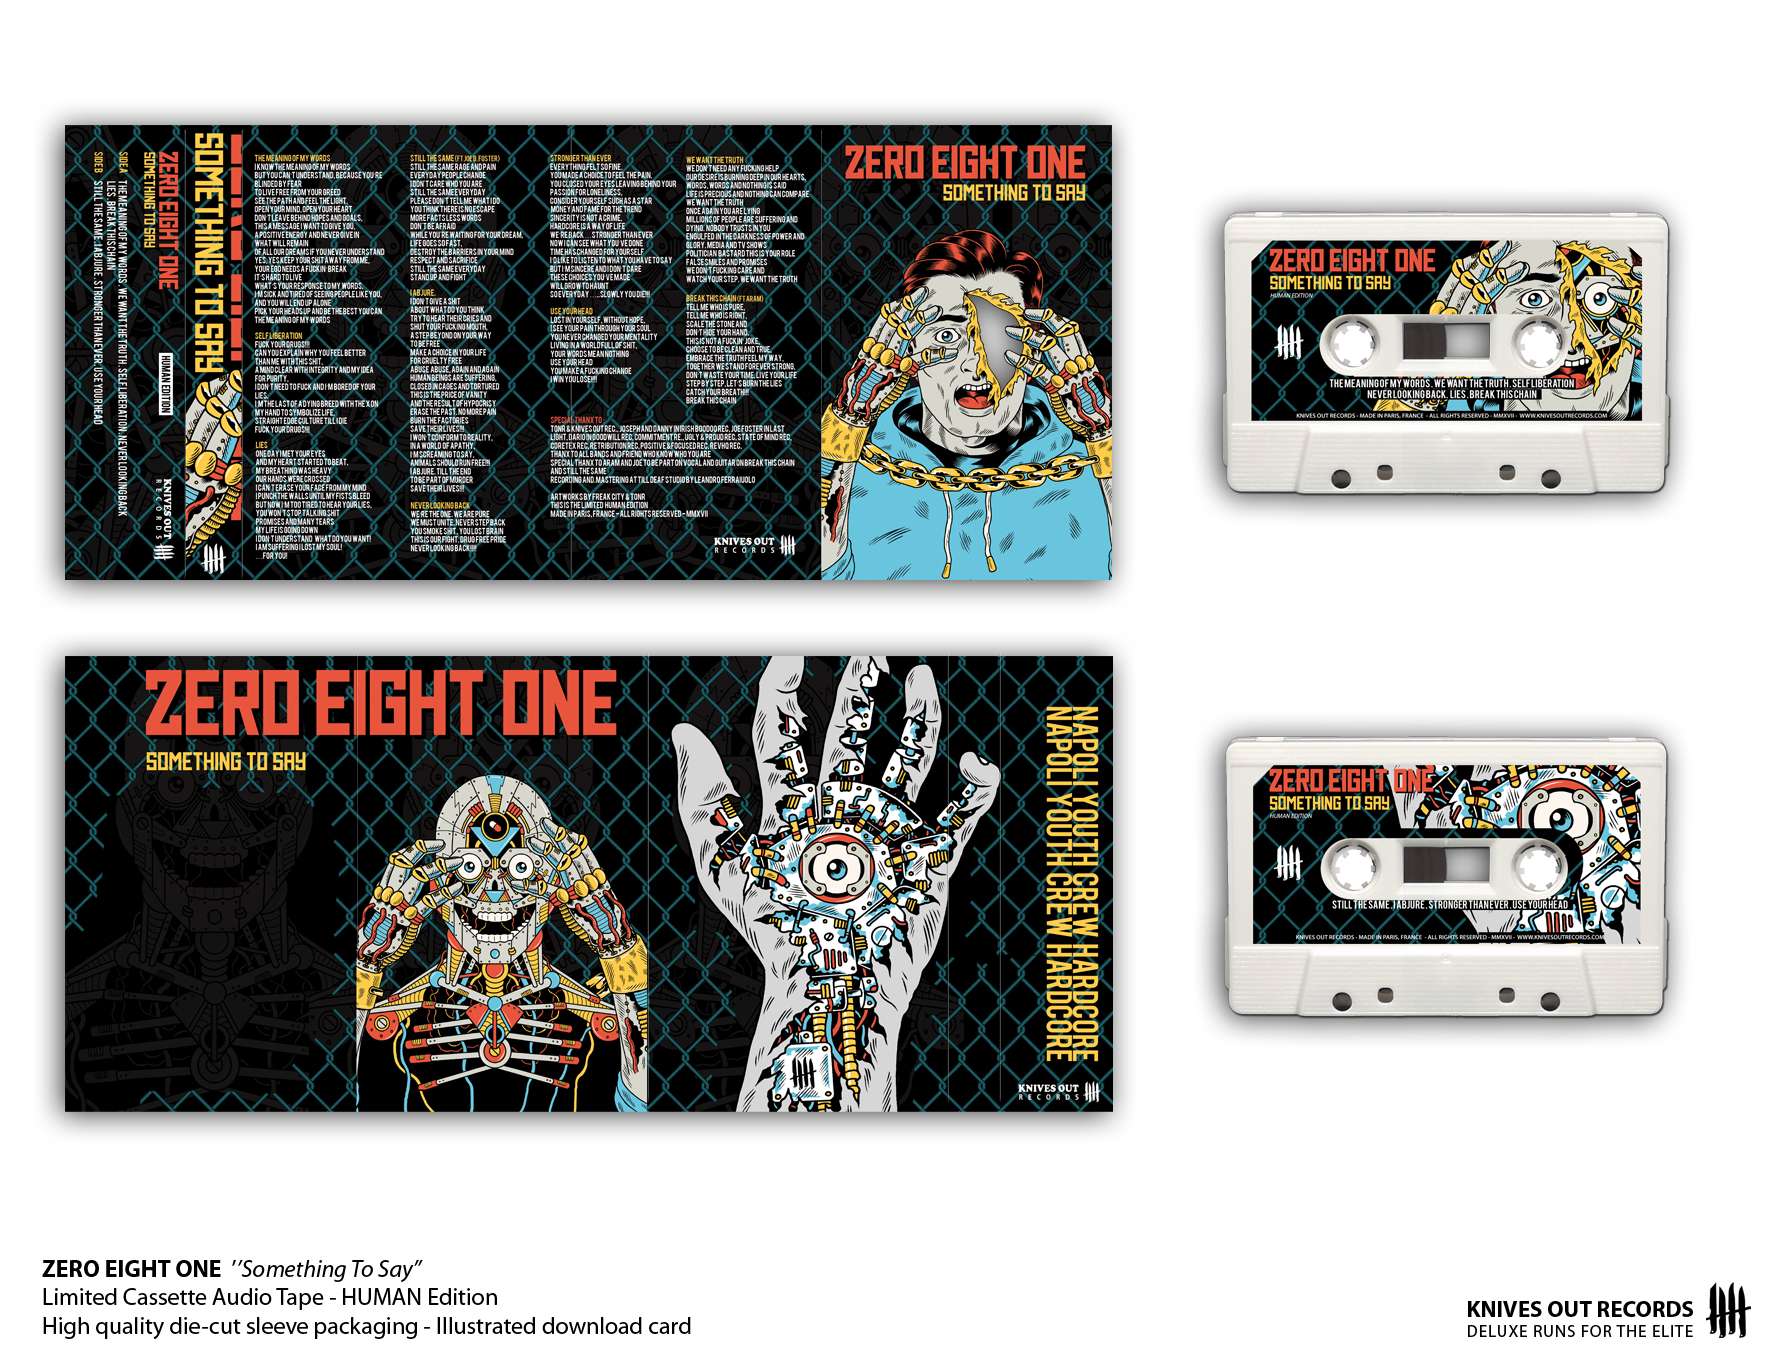 ZERO EIGHT ONE Something To Say Cassette Tape